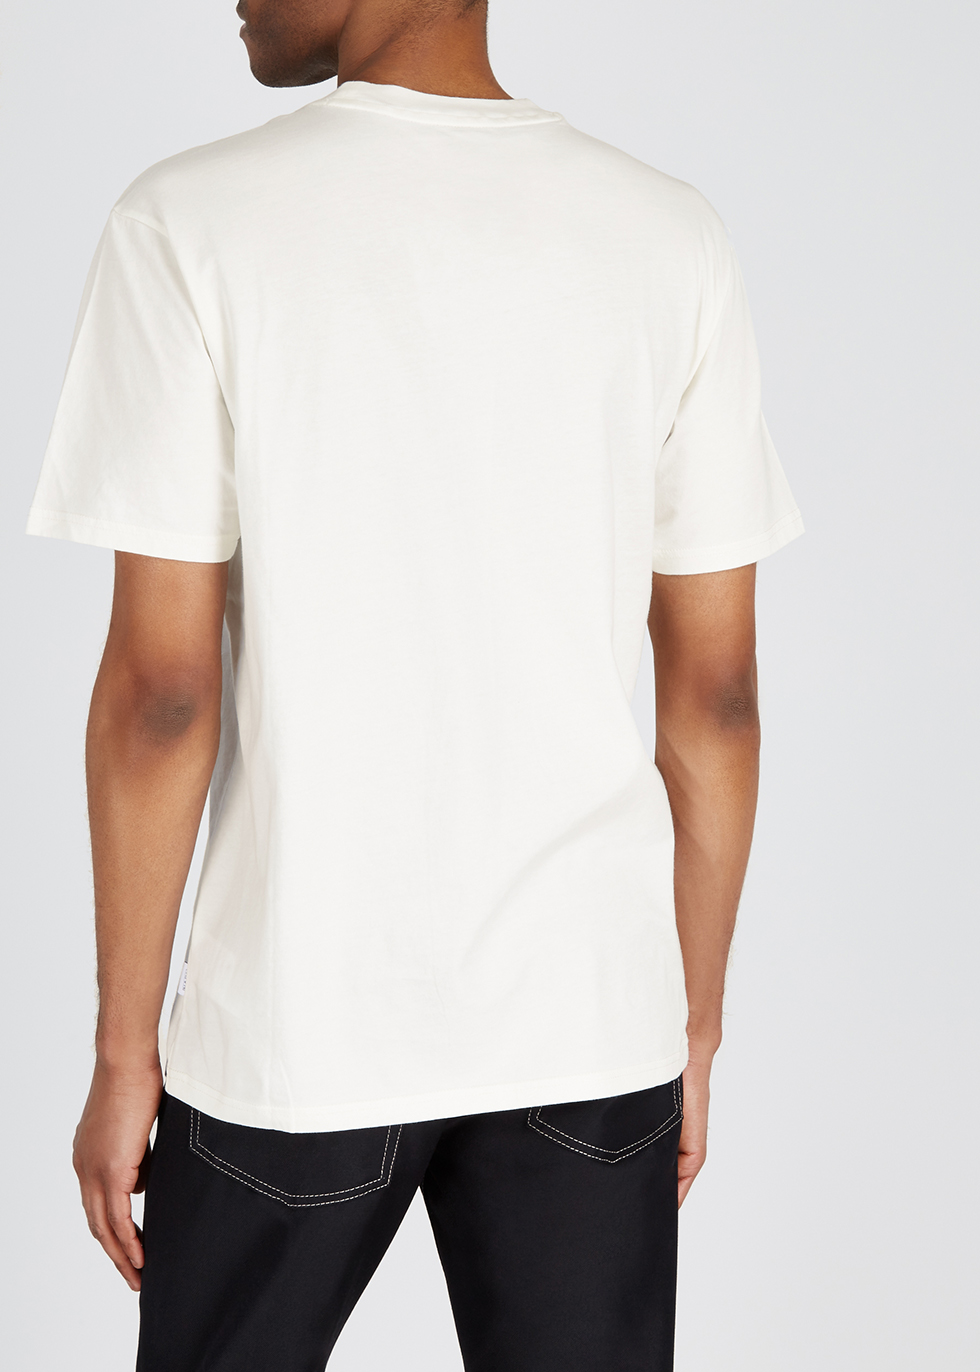 Scenis printed cotton T-shirt - Napa by Martine Rose